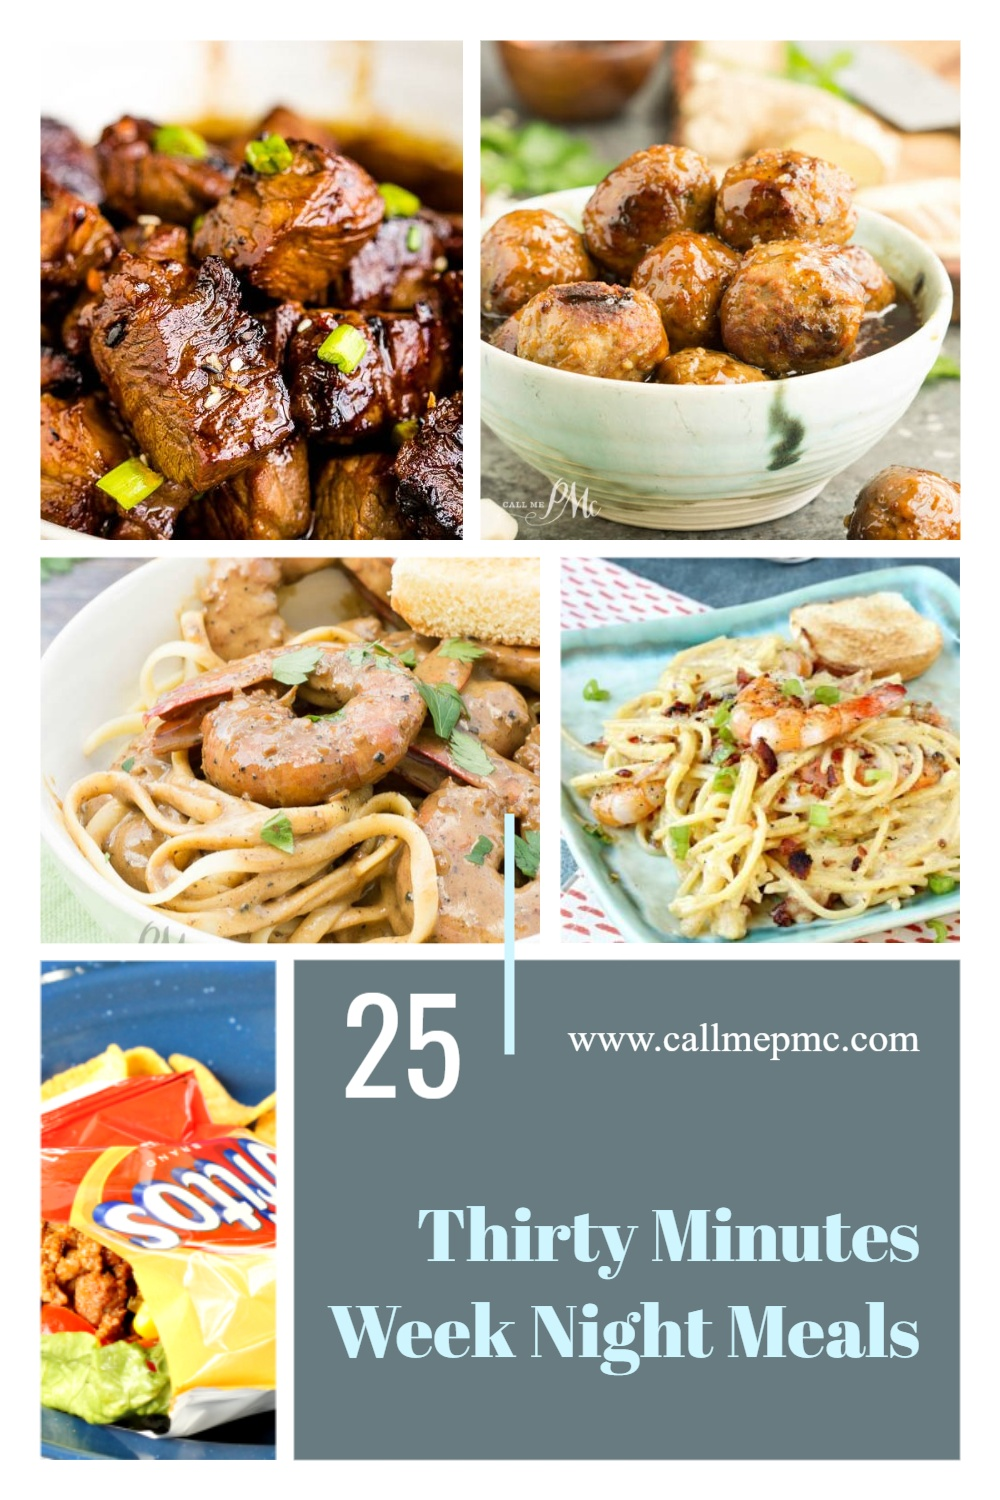 Try one of these savory 30 minute dinner recipes. Get a savory, hearty meal on the table in a flash. Easy 30 minute meals to the rescue!